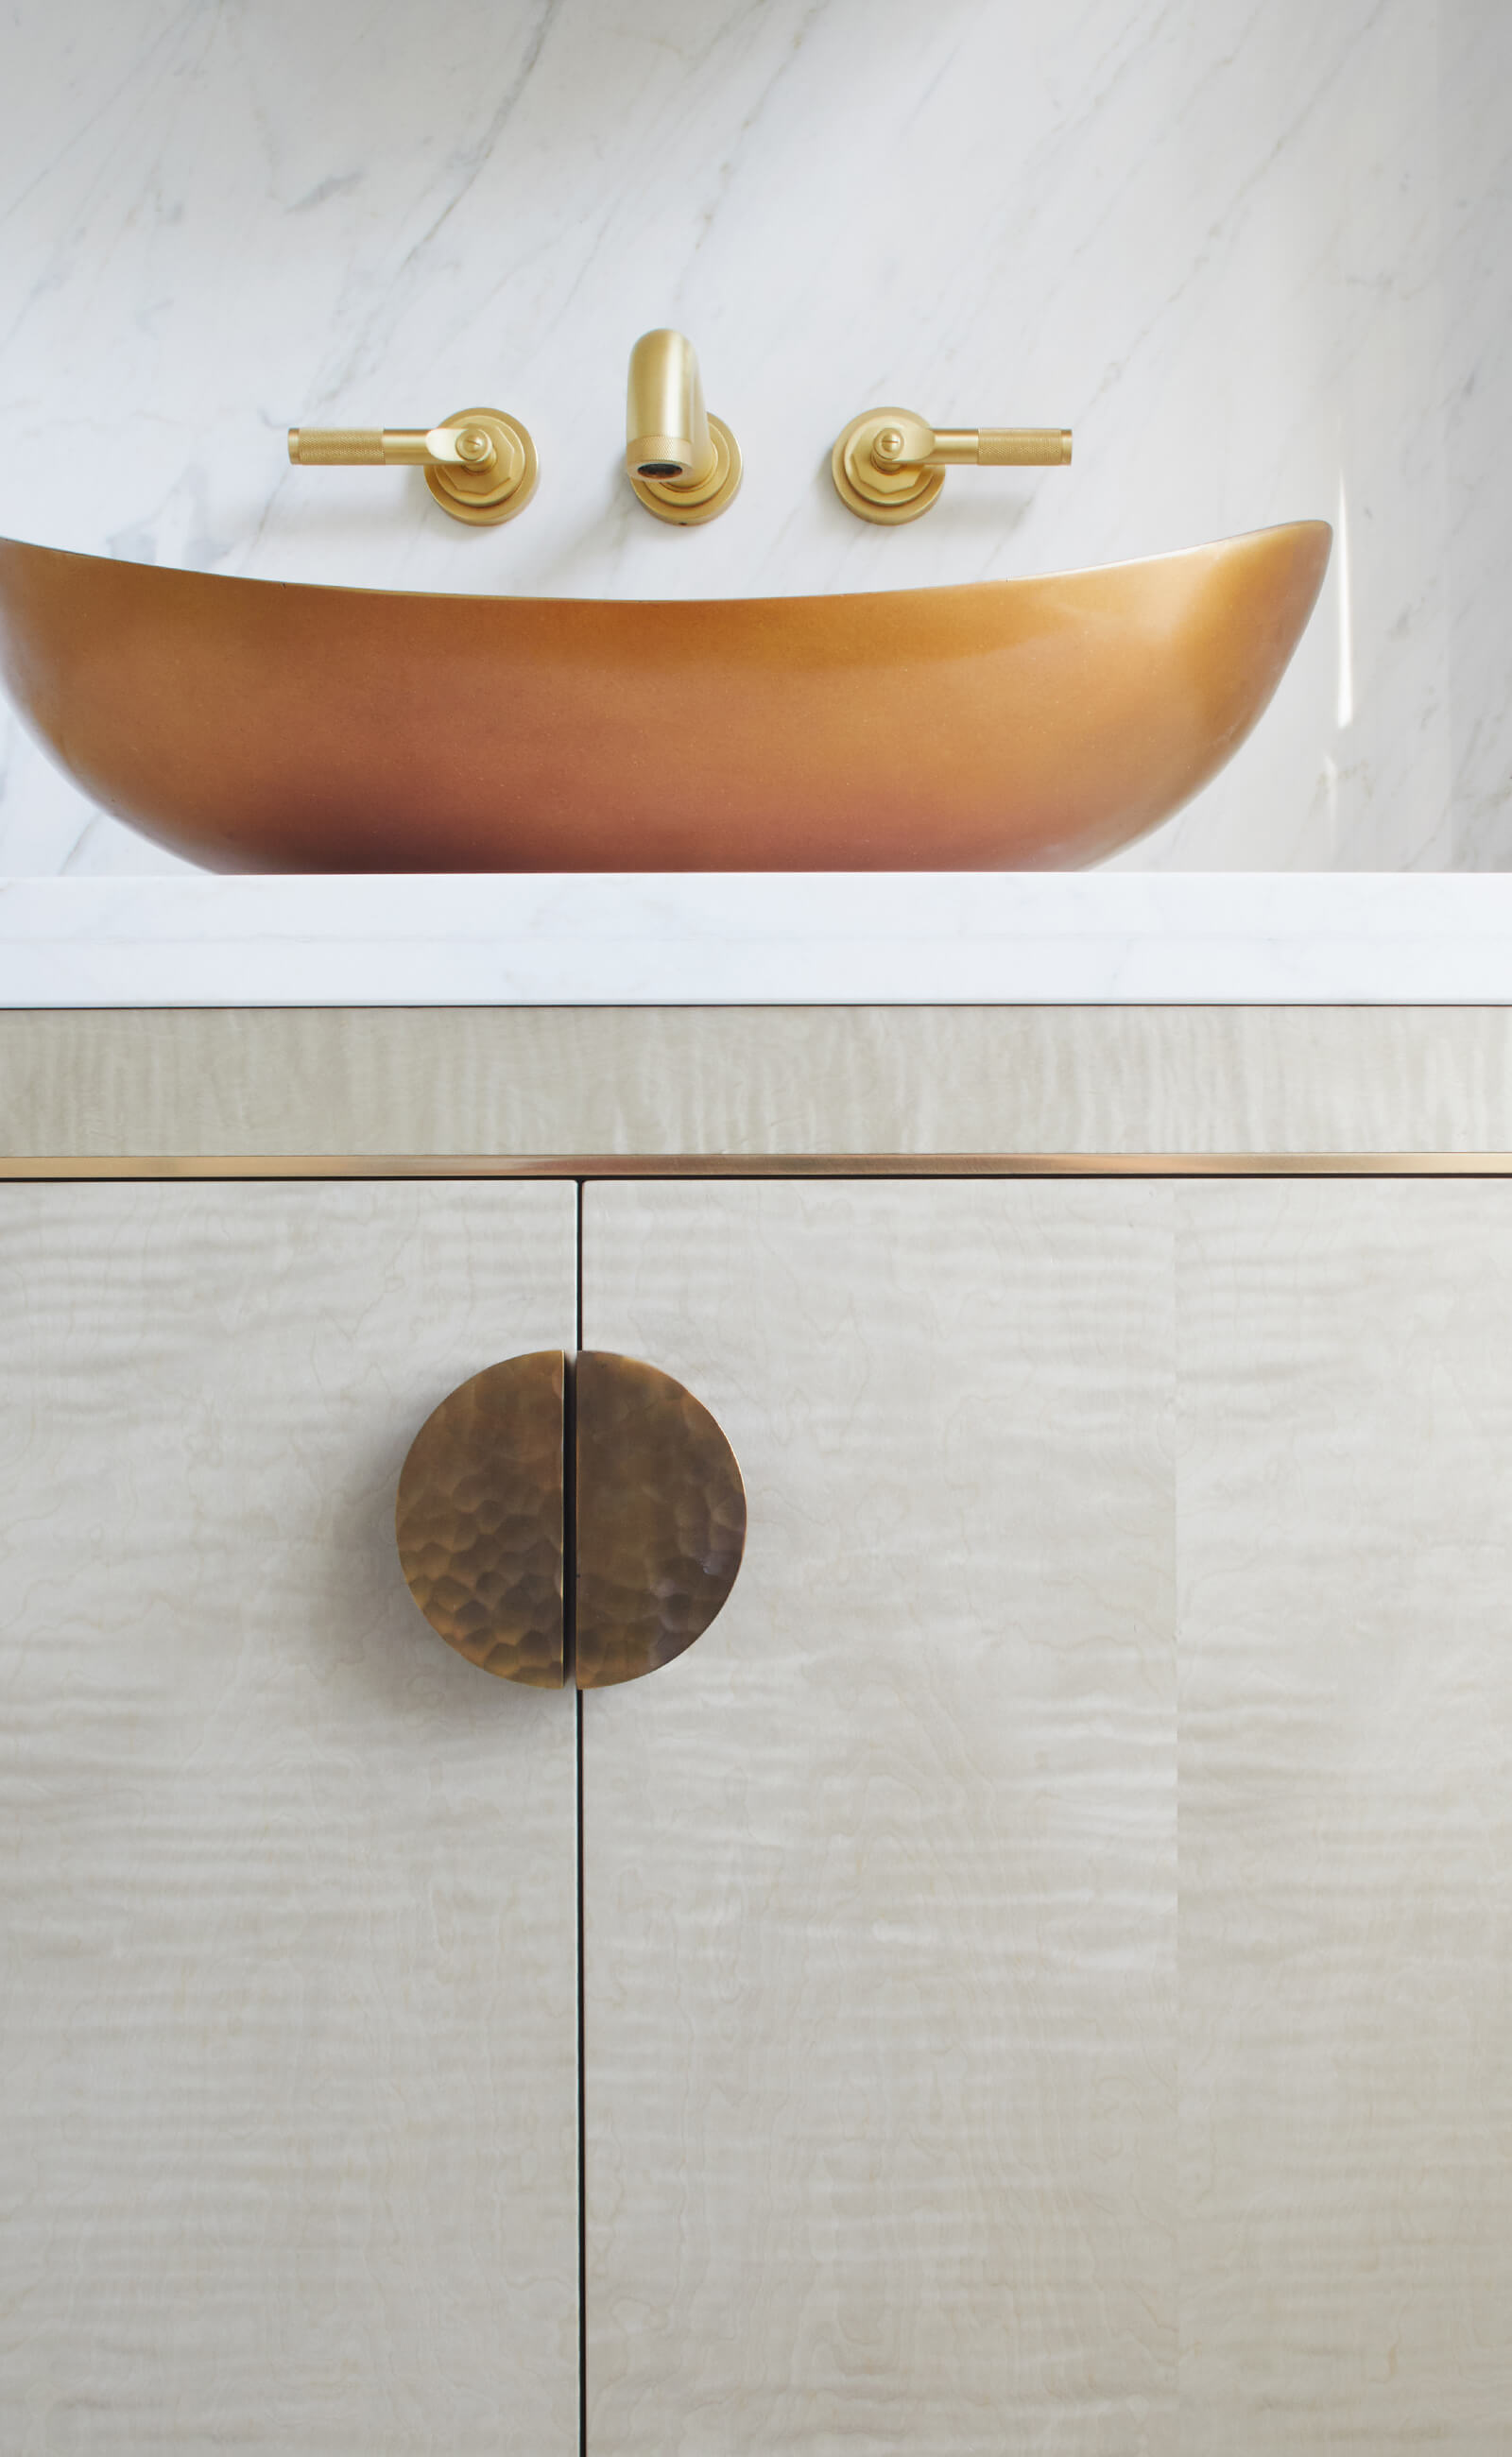 brass basin on veneered bathroom vanity cabinet by Splinterworks in carrara marble bathroom